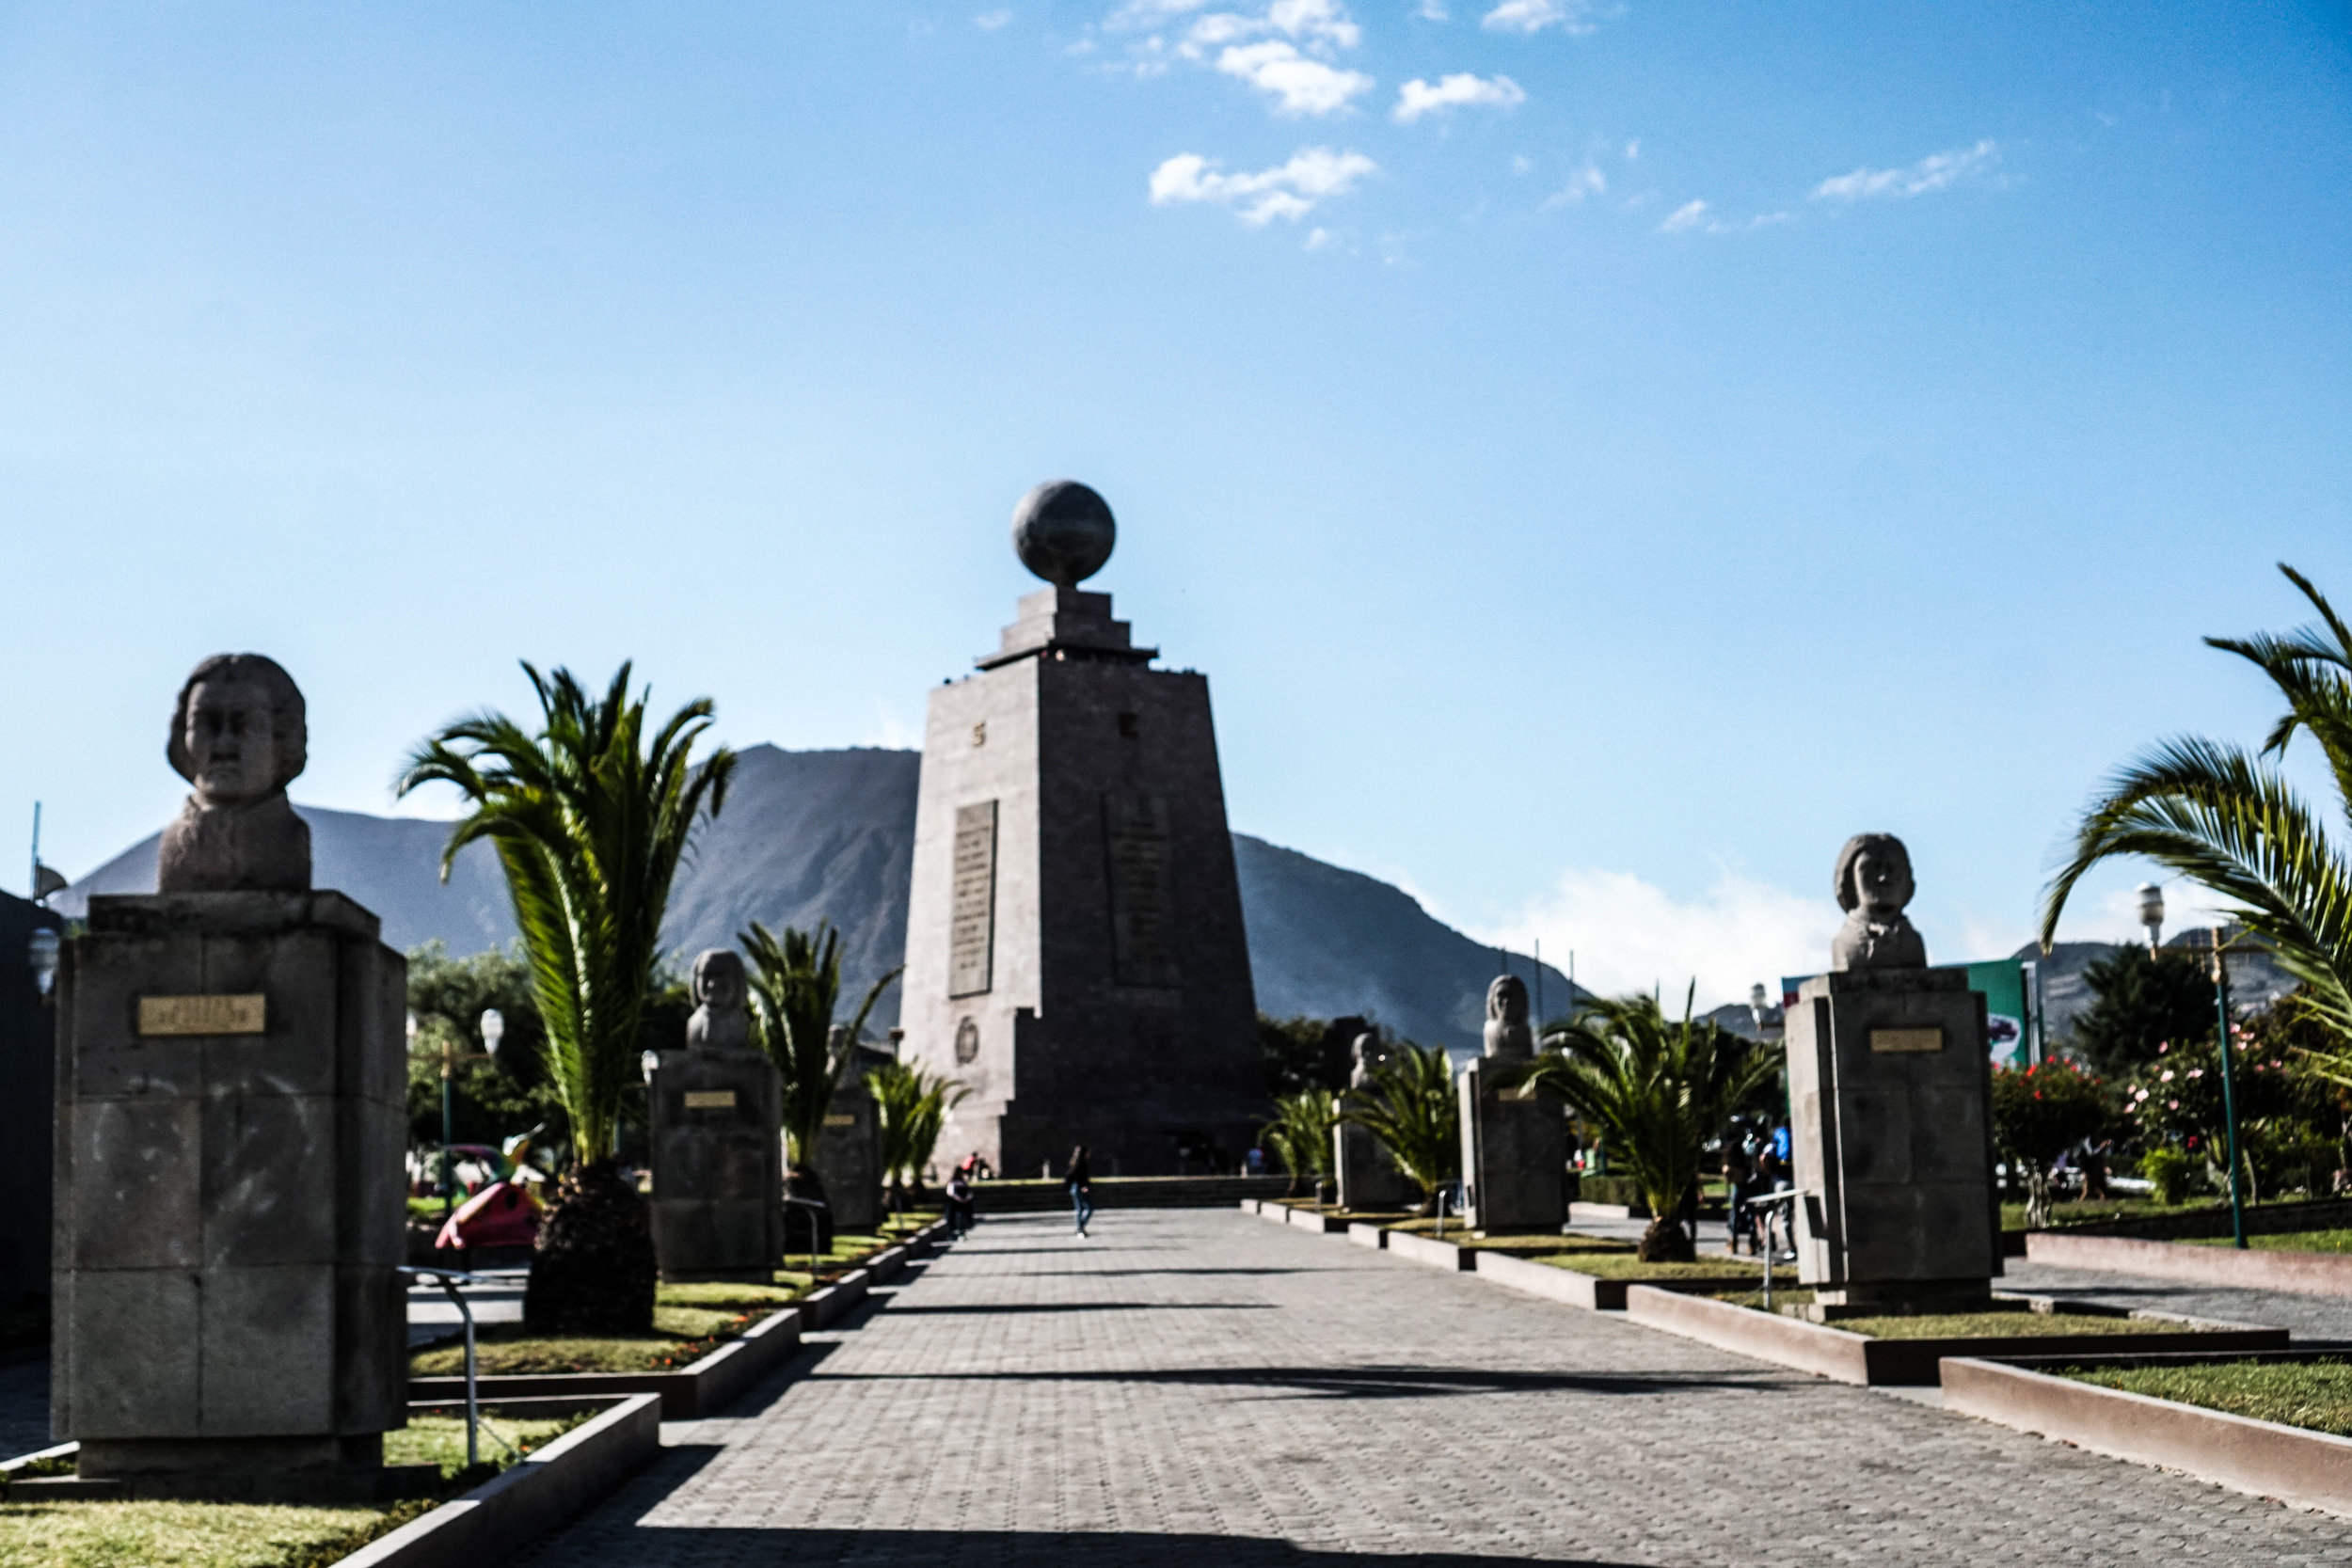 The monument at the center of the earth, the equator.